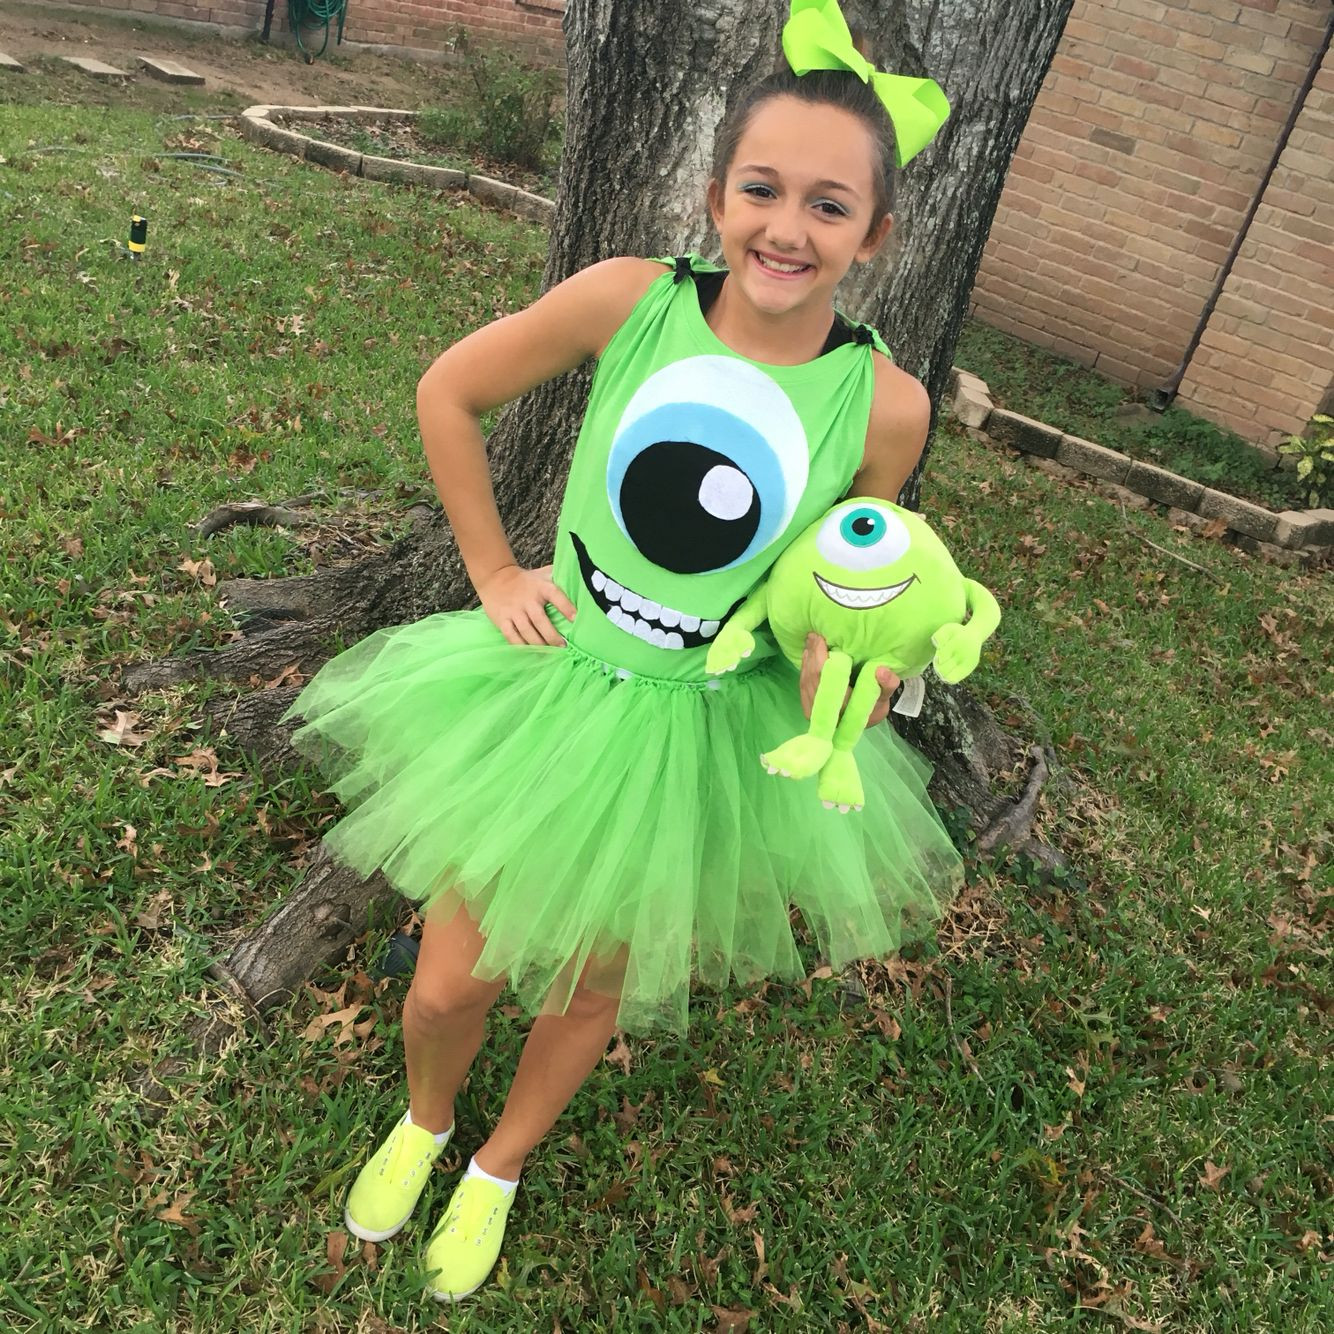 DIY Monsters Inc Costume  Our own Monsters Inc costume for Halloween